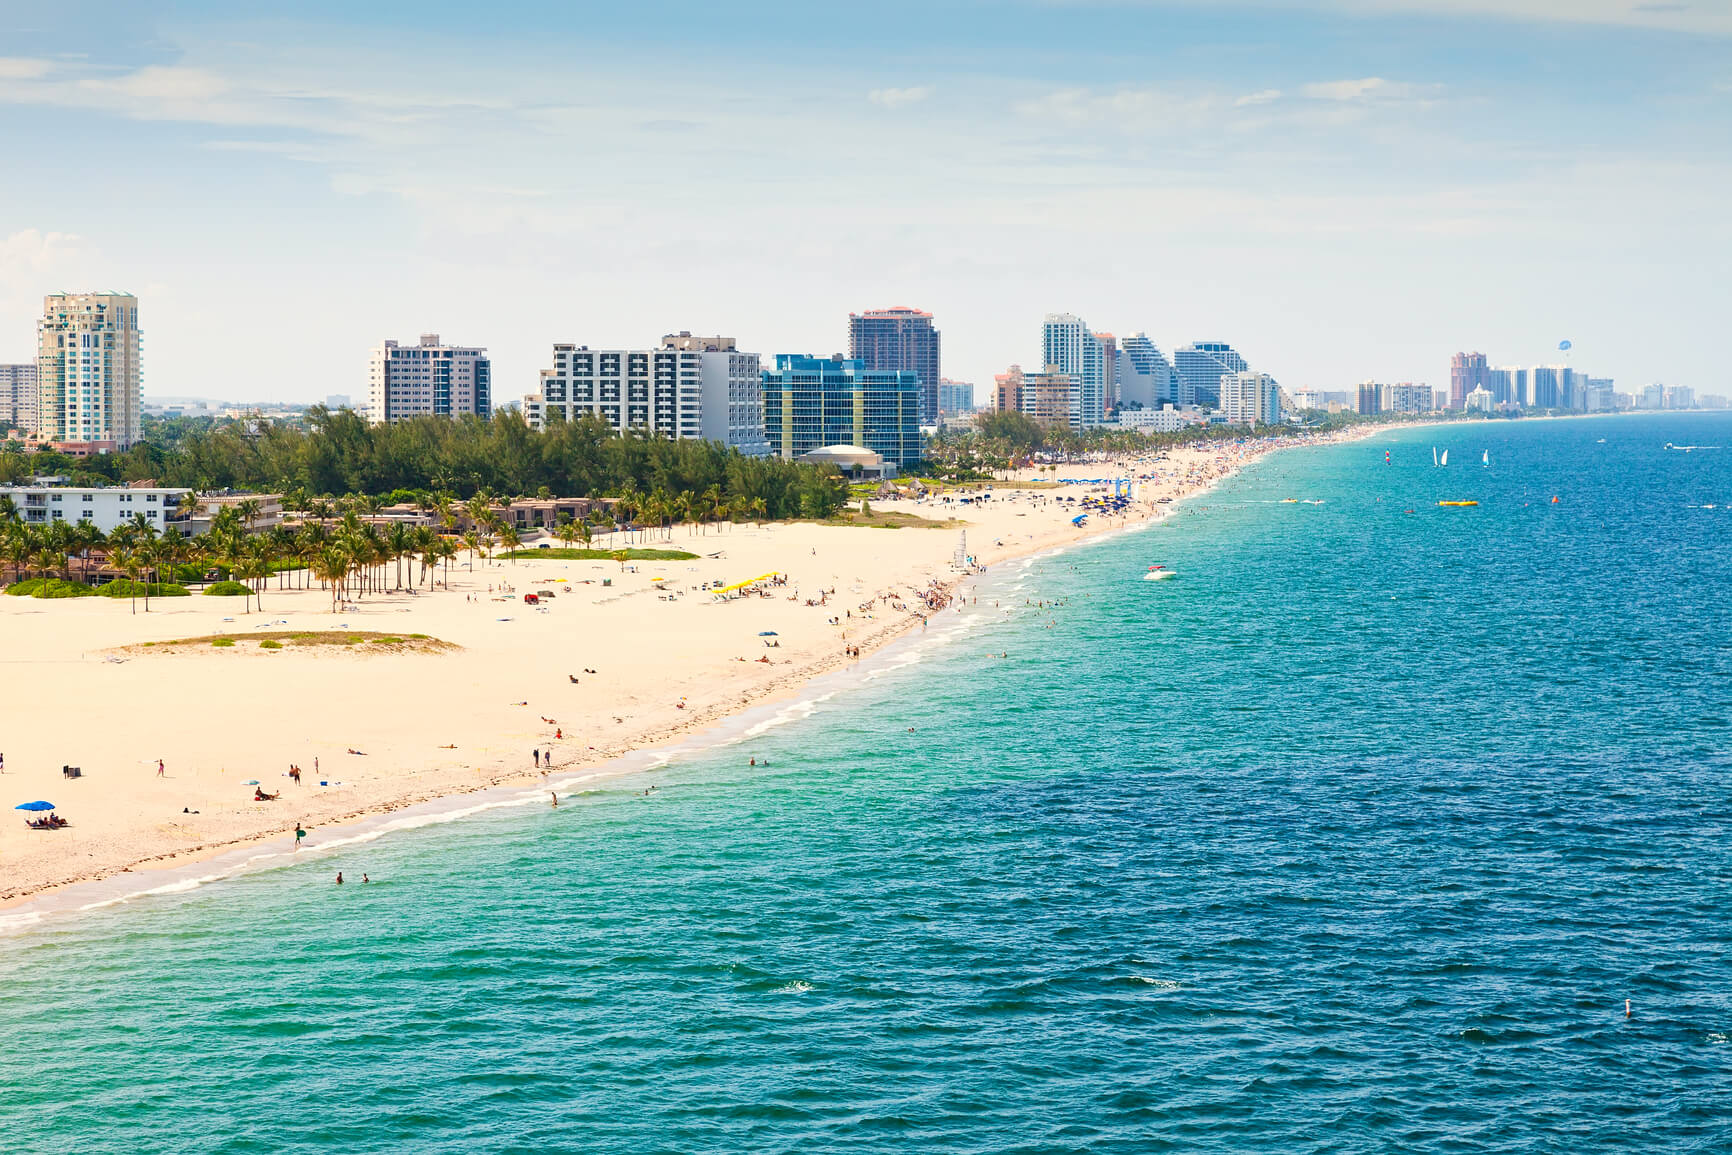 SUMMER: Non-stop from Chicago to Fort Lauderdale (& vice versa) for only $74 roundtrip (Aug-Oct dates)